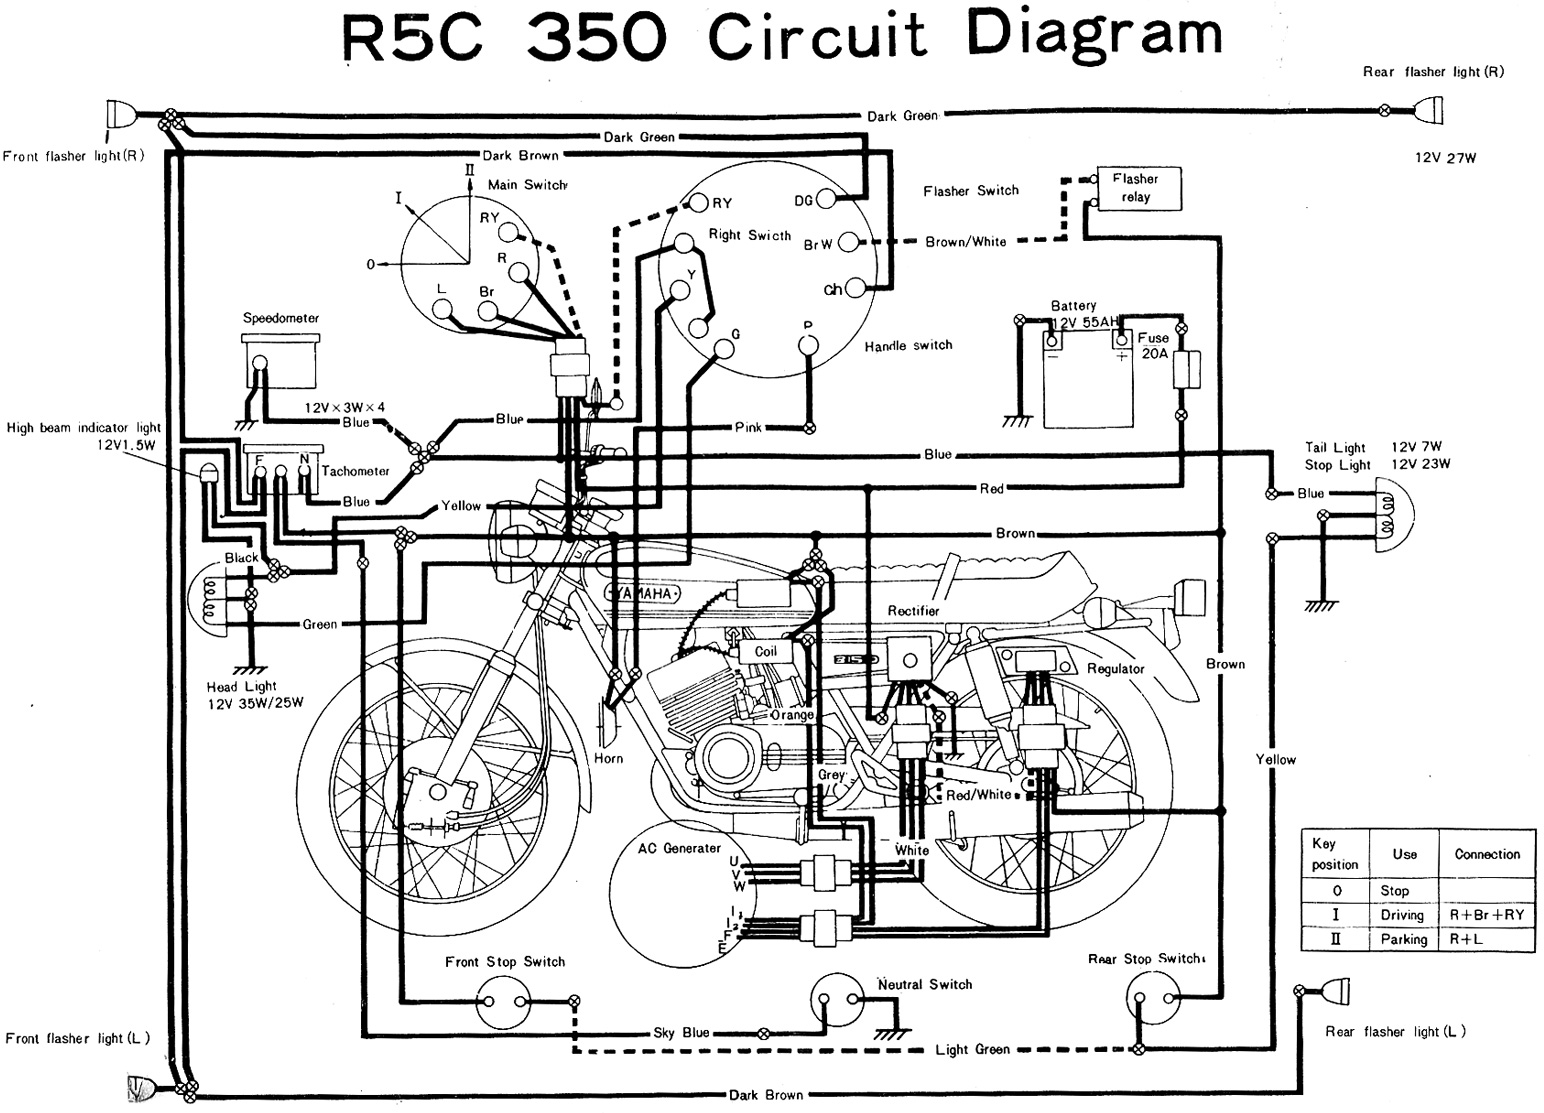 Yamaha RD350 R5C Wiring Diagram yamaha rd350 r5c wiring diagram evan fell motorcycle worksevan yamaha motorcycle wiring diagrams at couponss.co